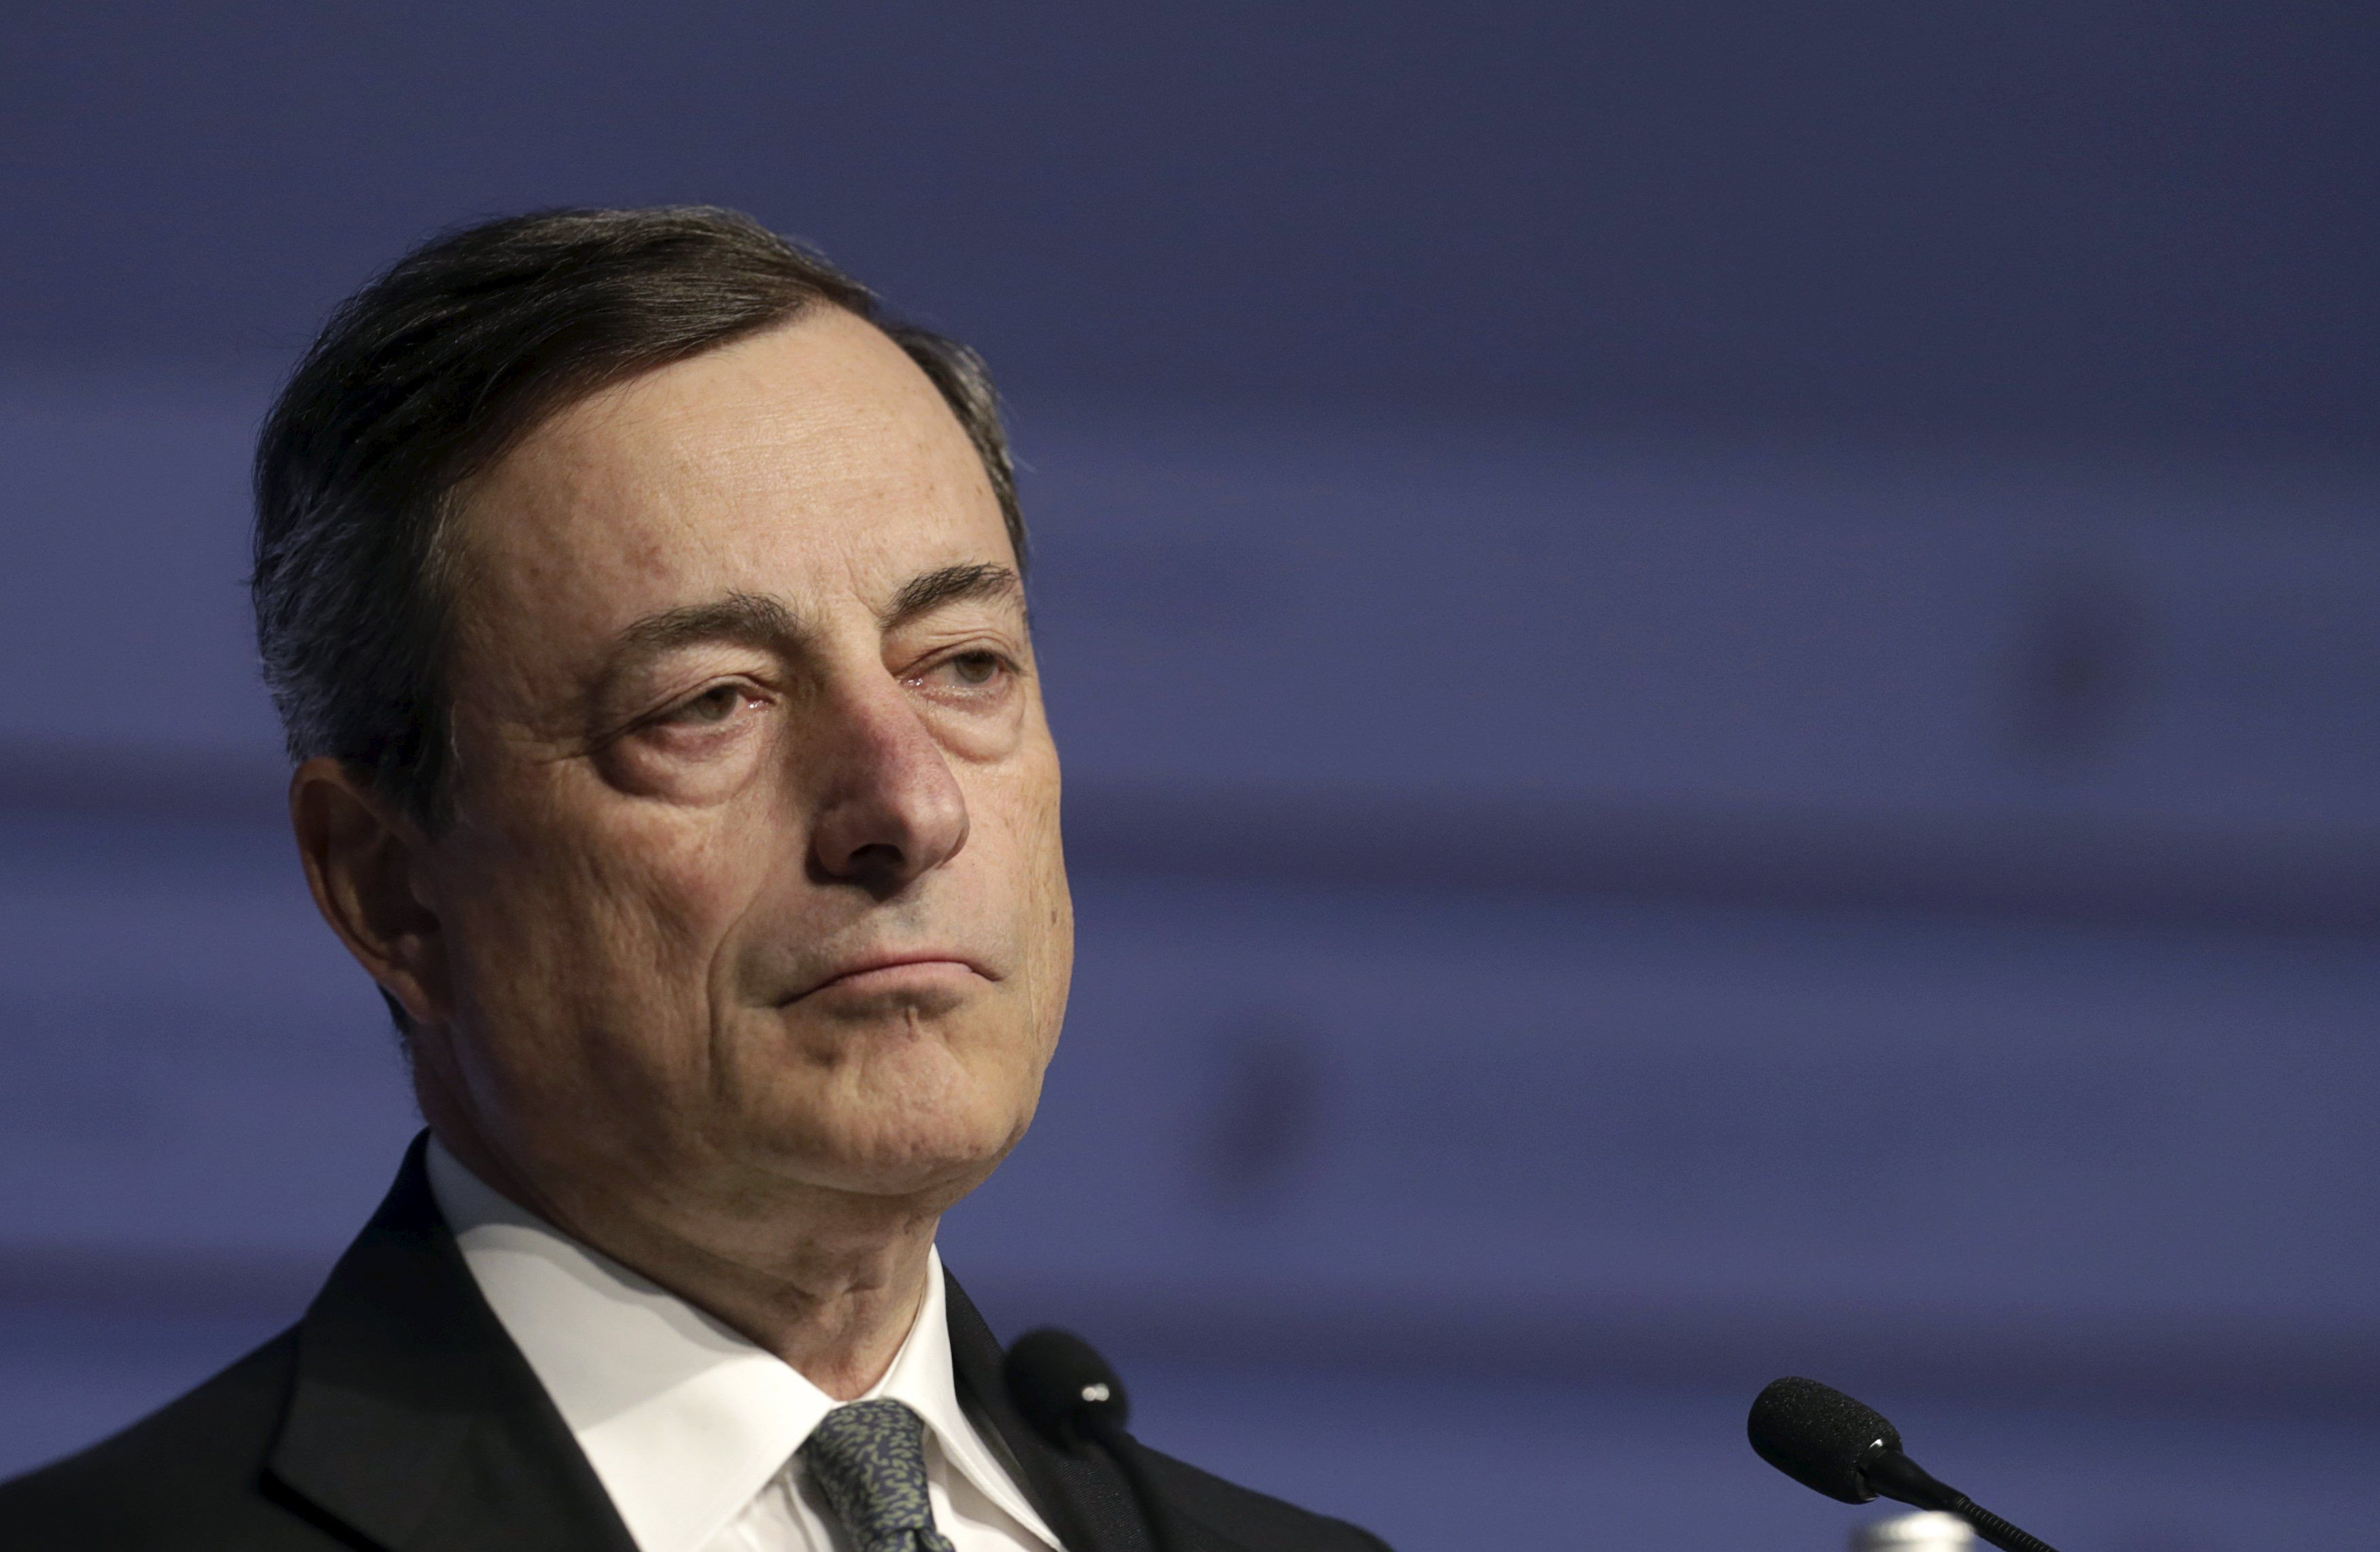 http://www.businesstimes.com.sg/sites/default/files/styles/large_popup/public/image/2015/05/14/MarioDraghi140515.jpg?itok=sA6PovDn